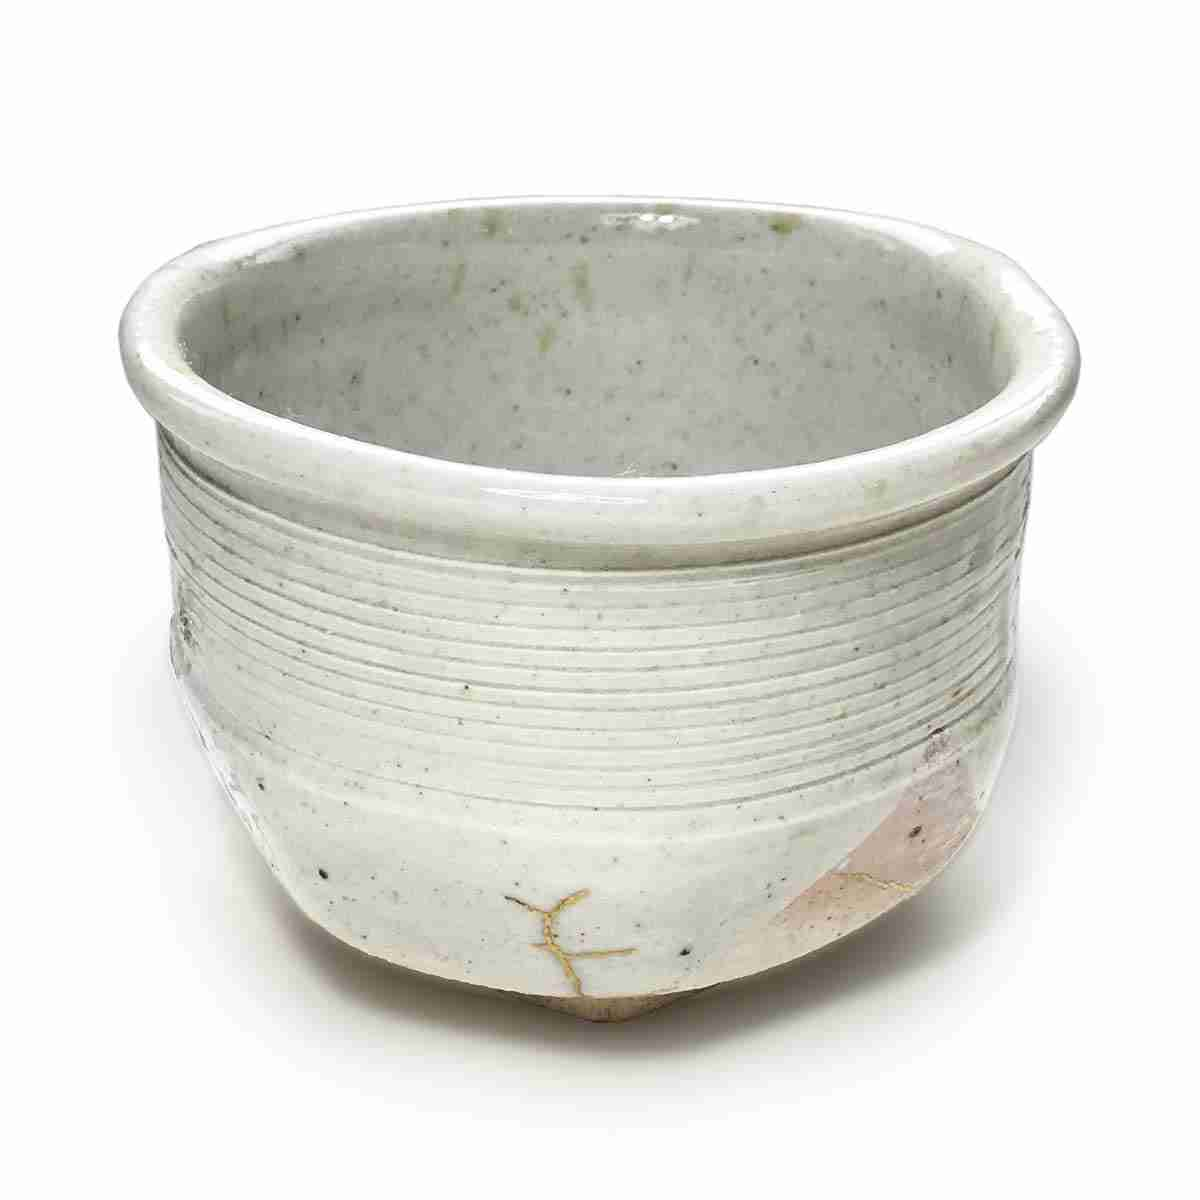 Materials: made with local clay sourced in Kyushu, southern Japan 